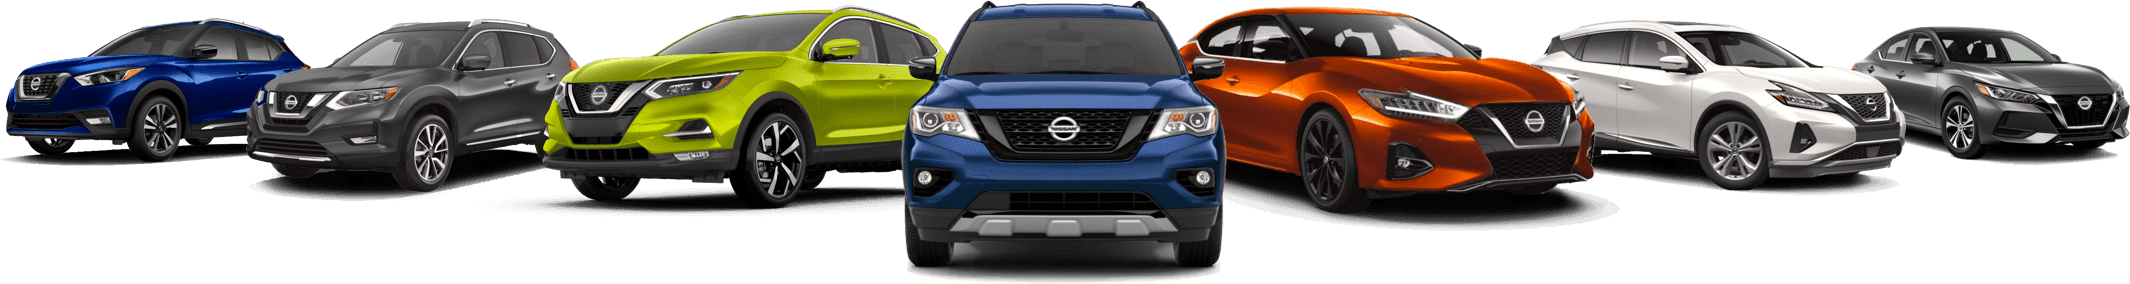 2020 Fowler Nissan line-up